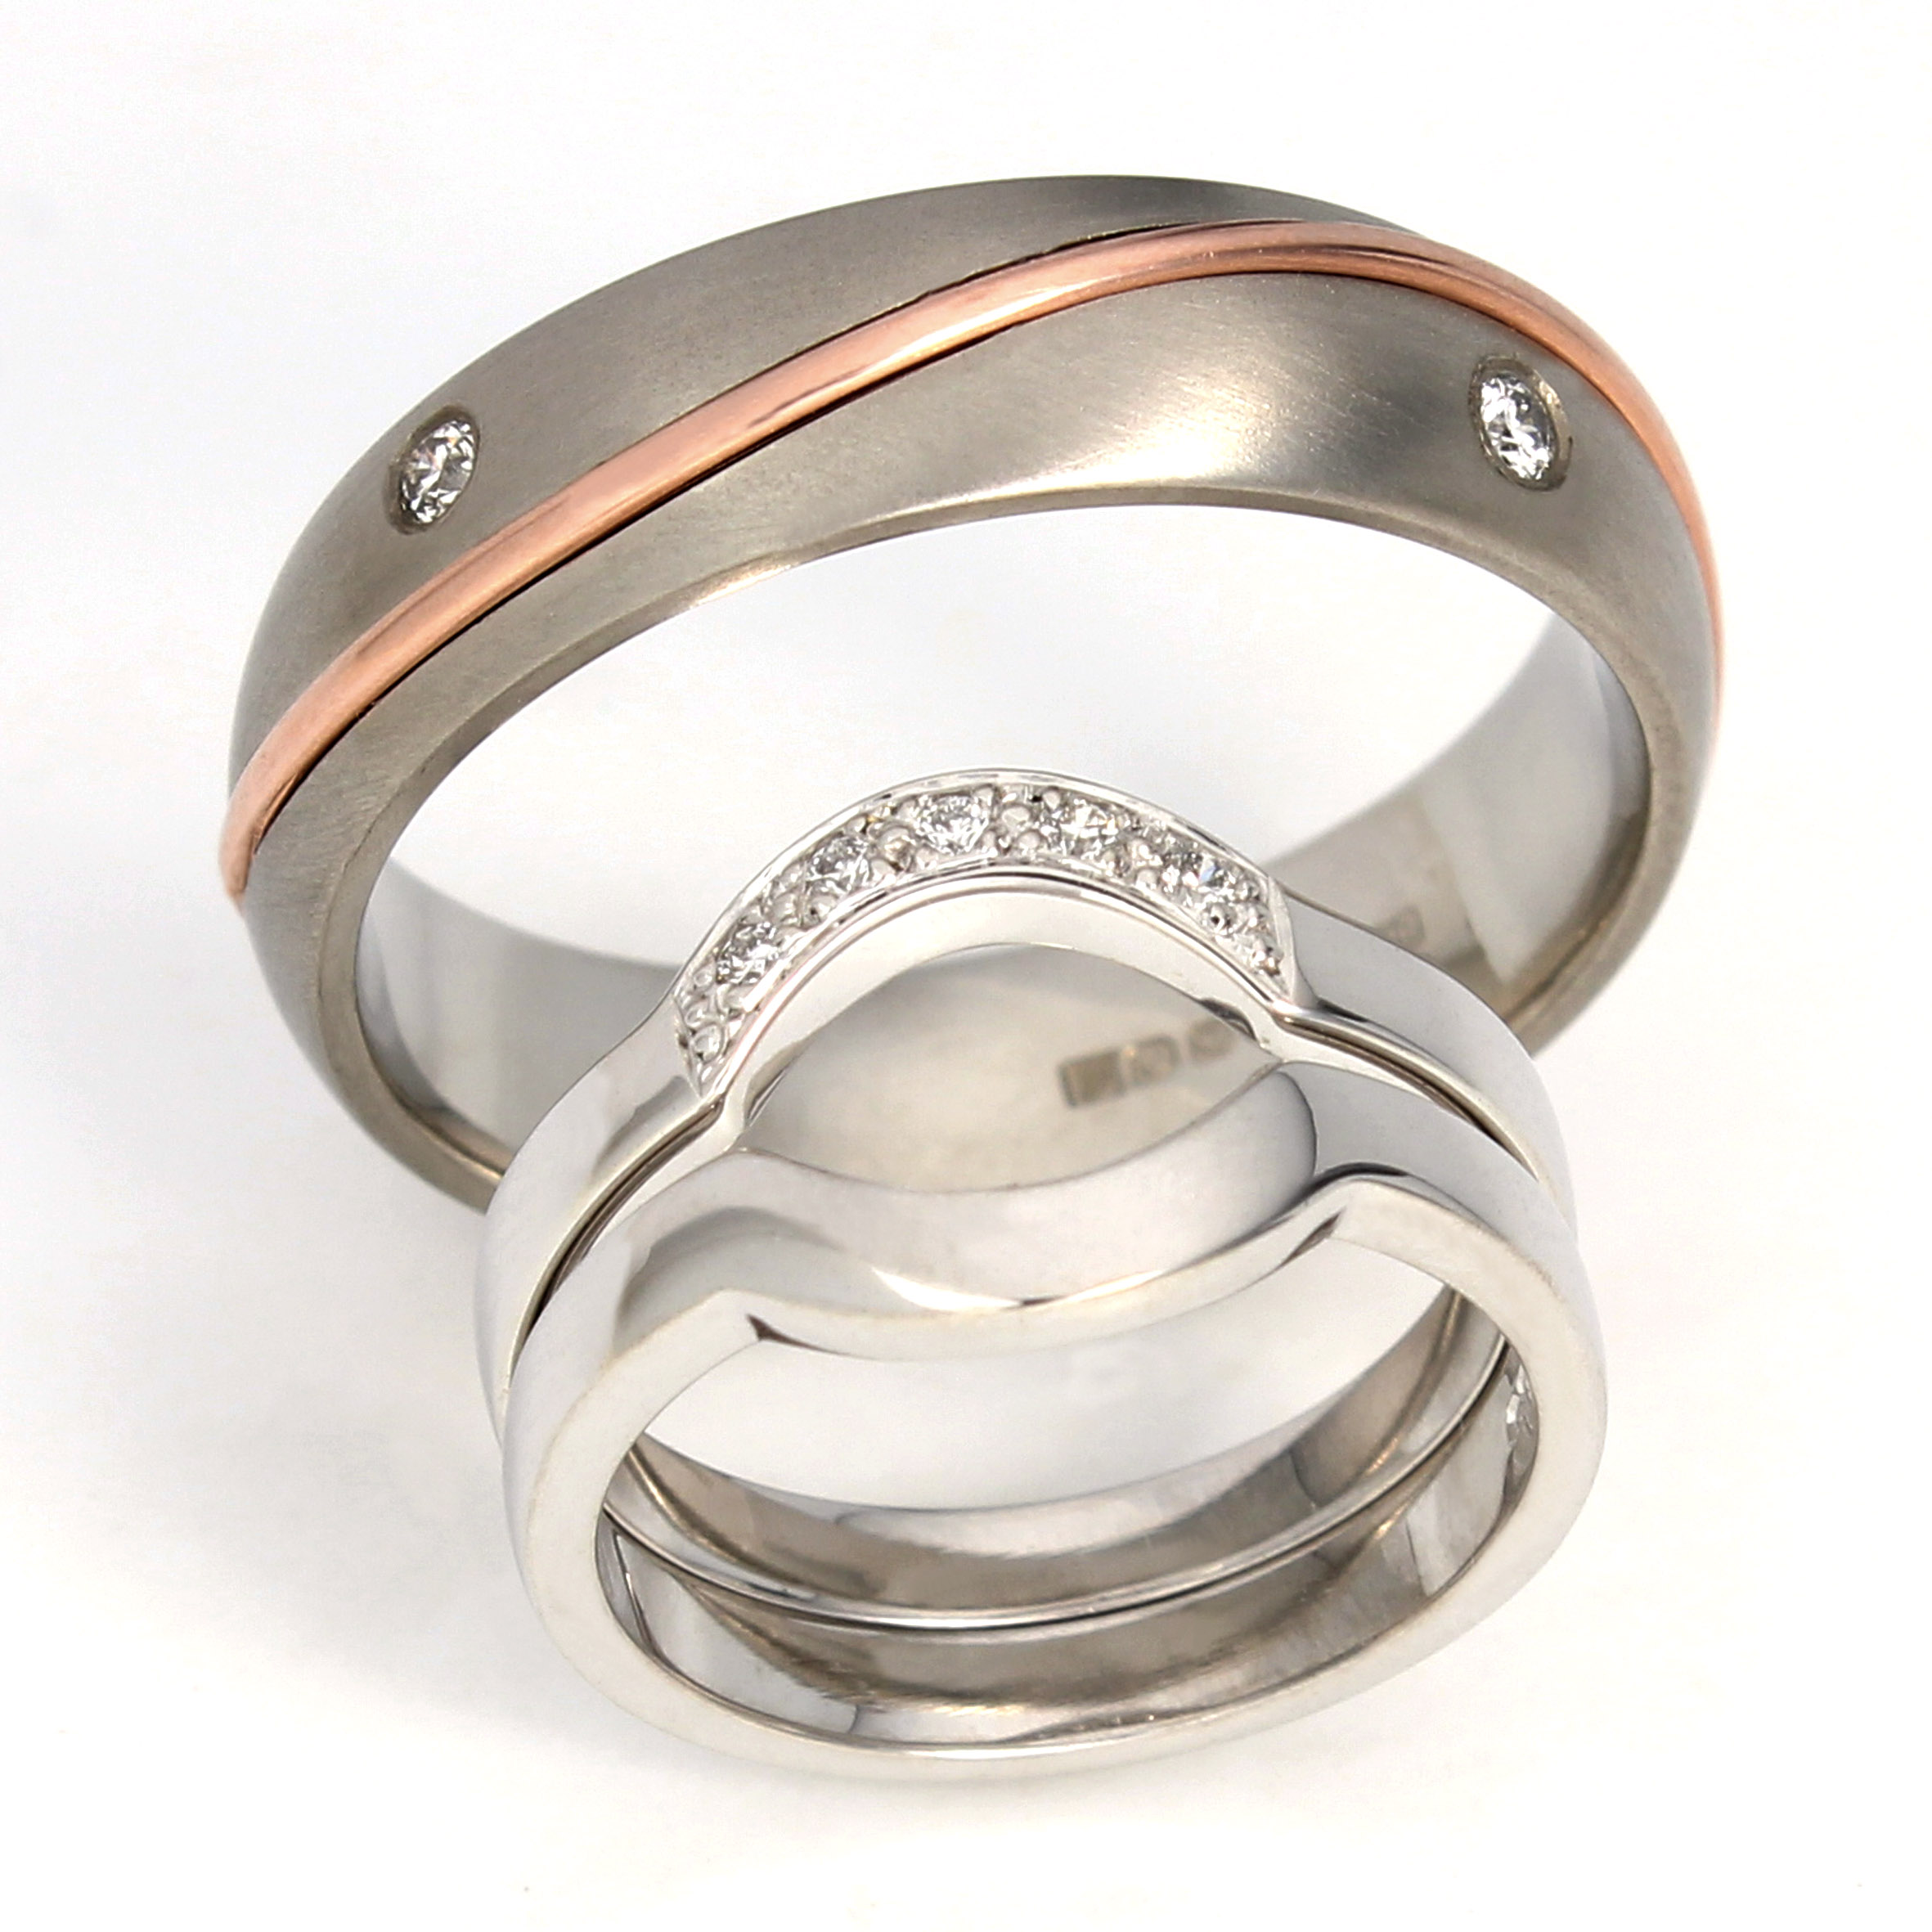 band groom and sets rose gold diamond women bridal him patterned hers thin engagement cut her bride ring princess brushed ideas silver ladies mens nice composition his black wedding the matching bands rings for white